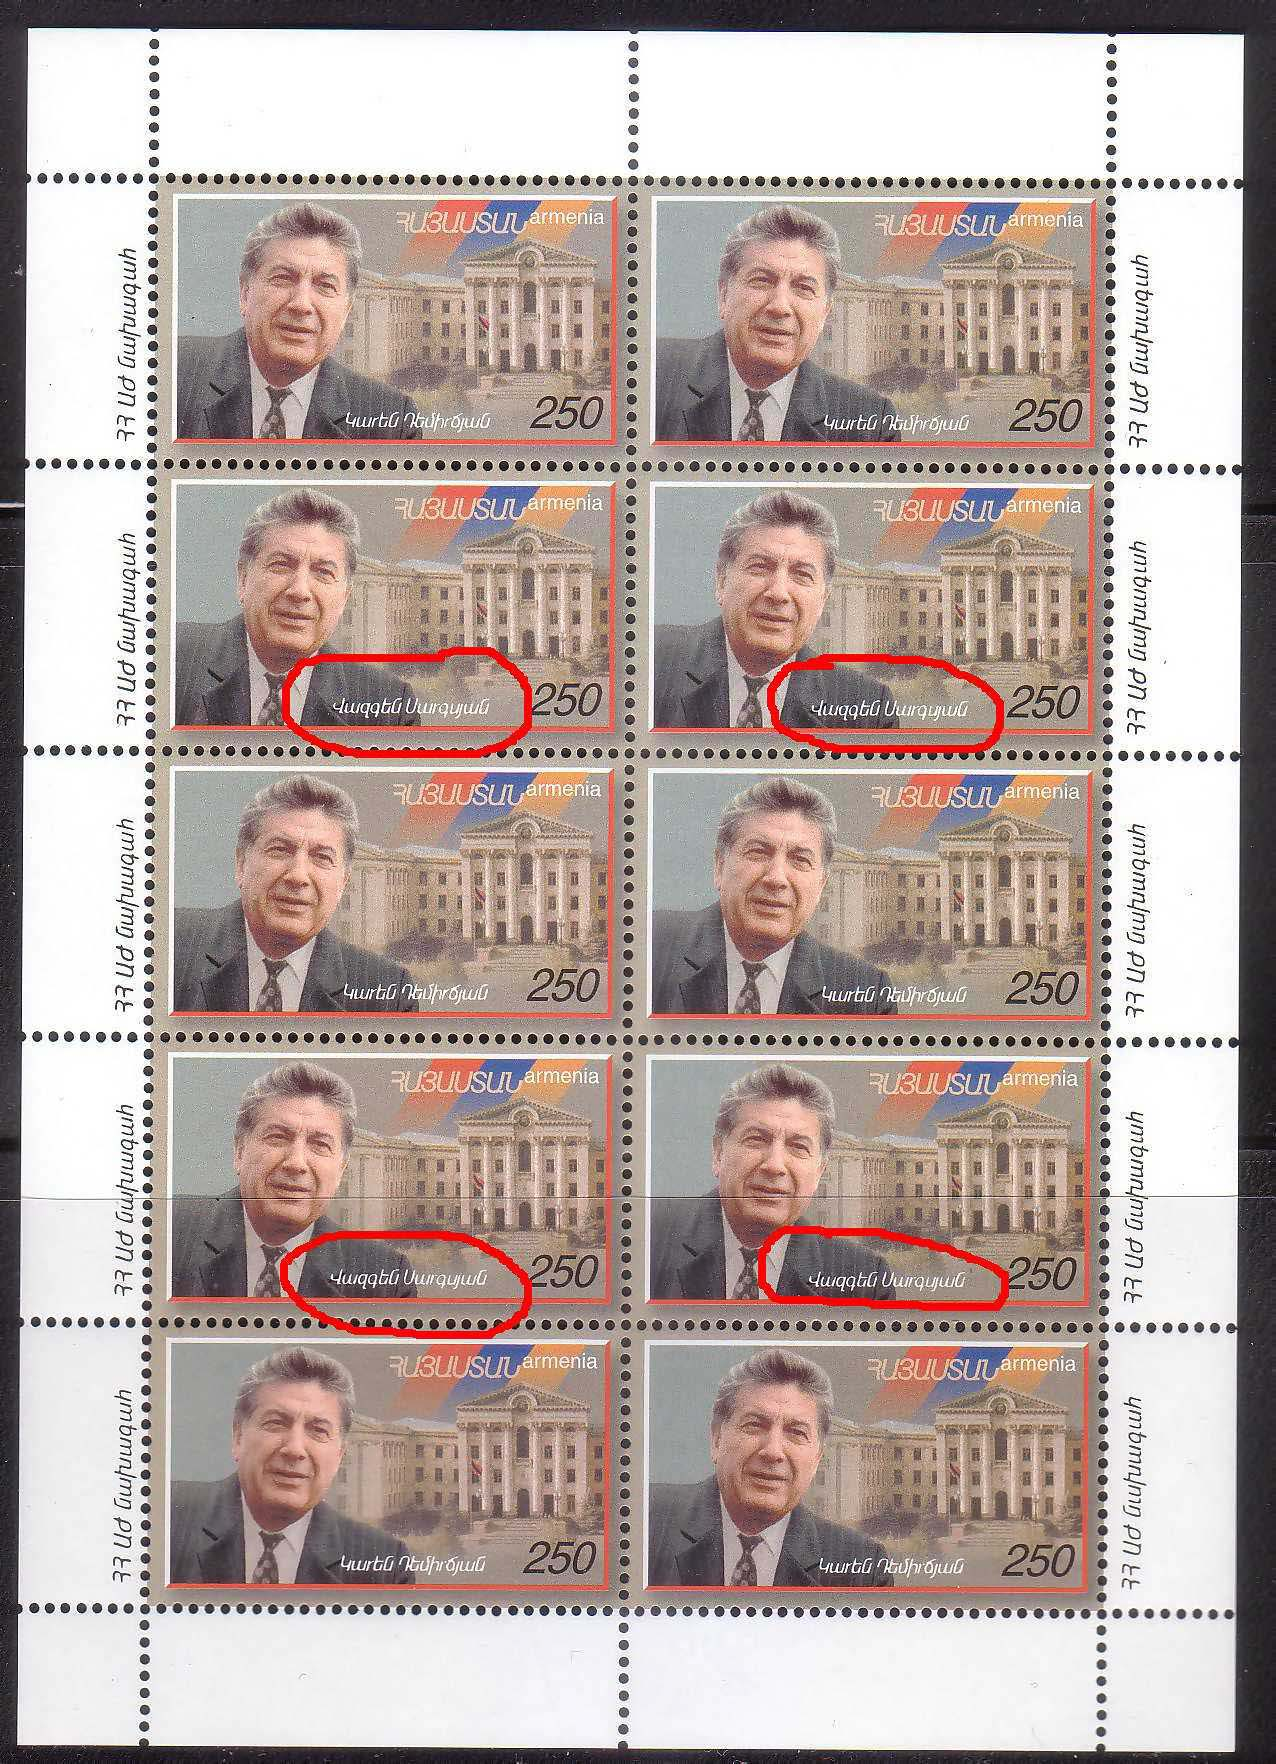 "<font 7-175>175, (Scott #604). Karen Demirchian's sheetlet of 10 where four of the stamps have Vazgen Sargsian's name.  No record as to how many such errors exist, probably under 50 sheets.  A very scarce error.  See the image.<p> <a href=""/shop/catalog/images/ArmenianStamps-175-Demirjian-Error-sheet-2.jpg"">   <font color=green><b>View the image</b></a></font>"